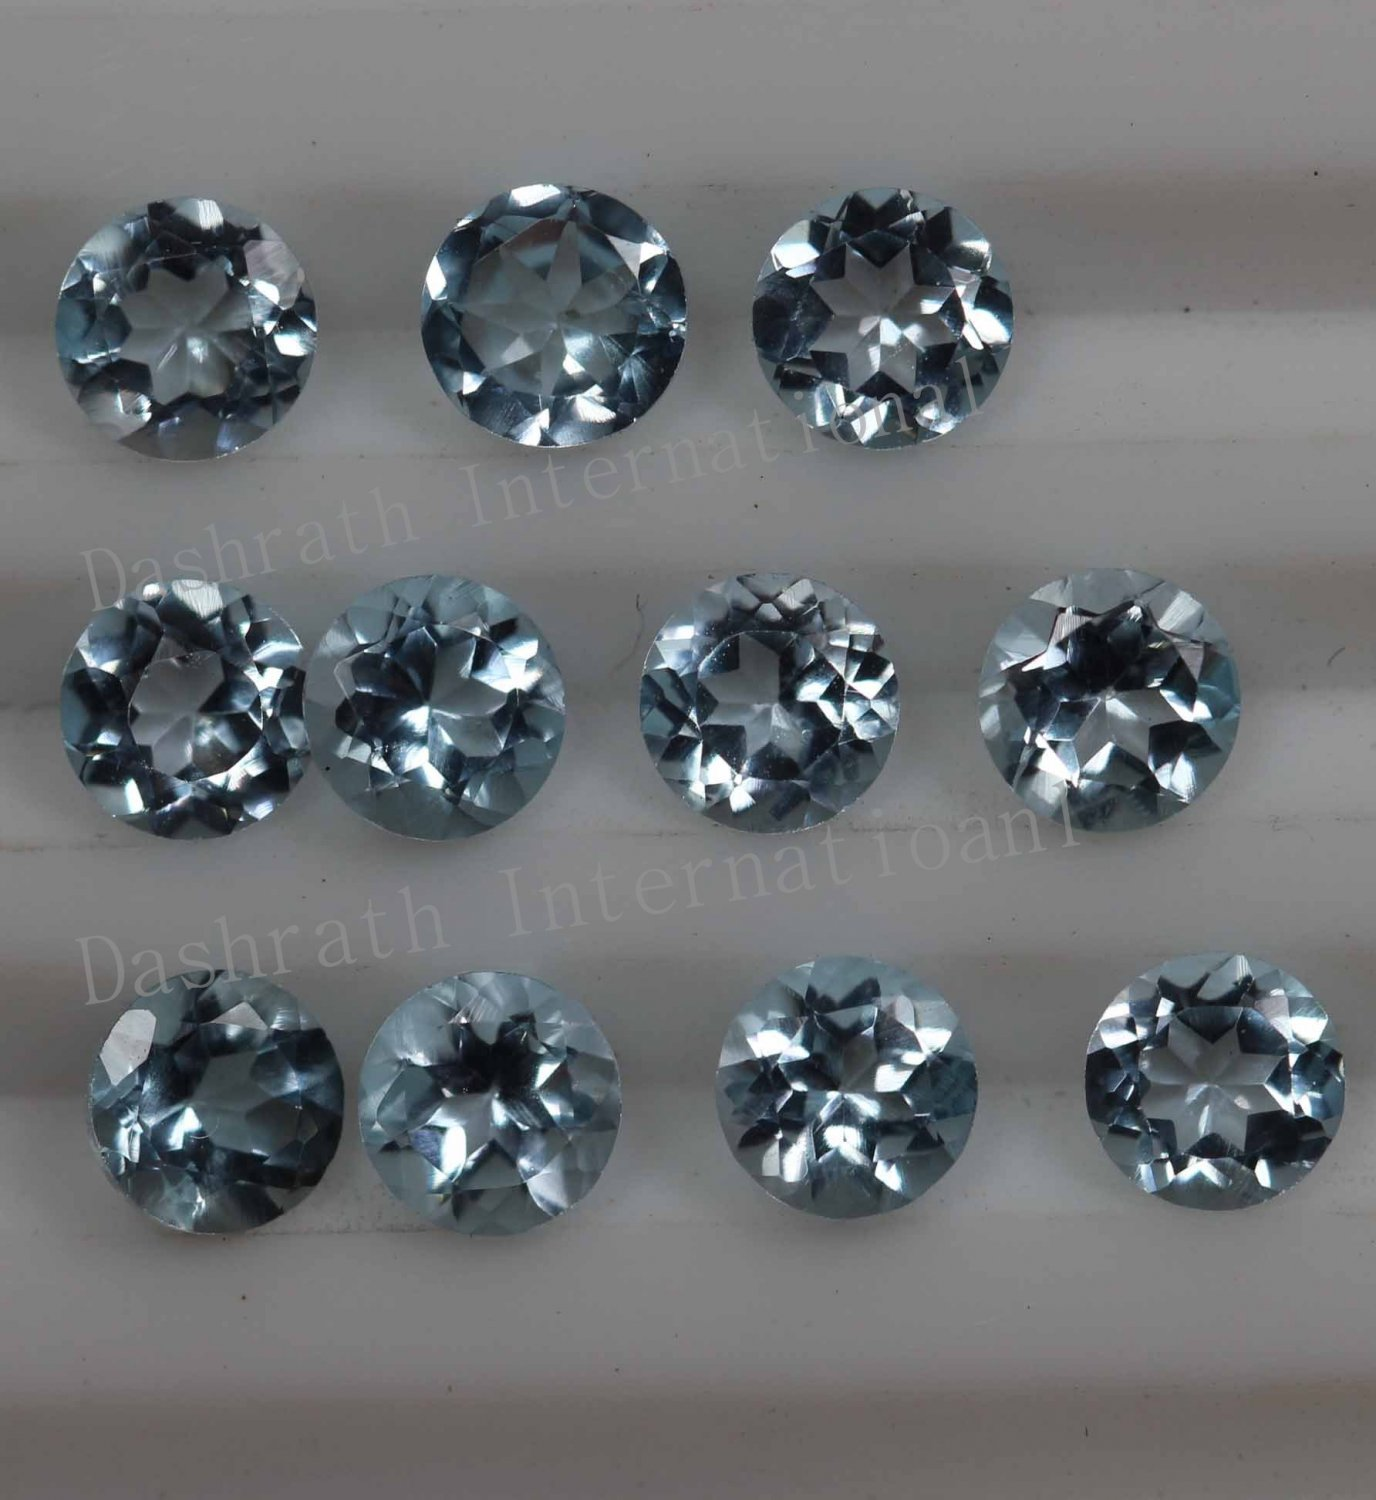 6mmNatural Sky Blue Topaz Faceted Cut Round 10 Pieces Lot Blue Color  Top Quality Loose Gemstone